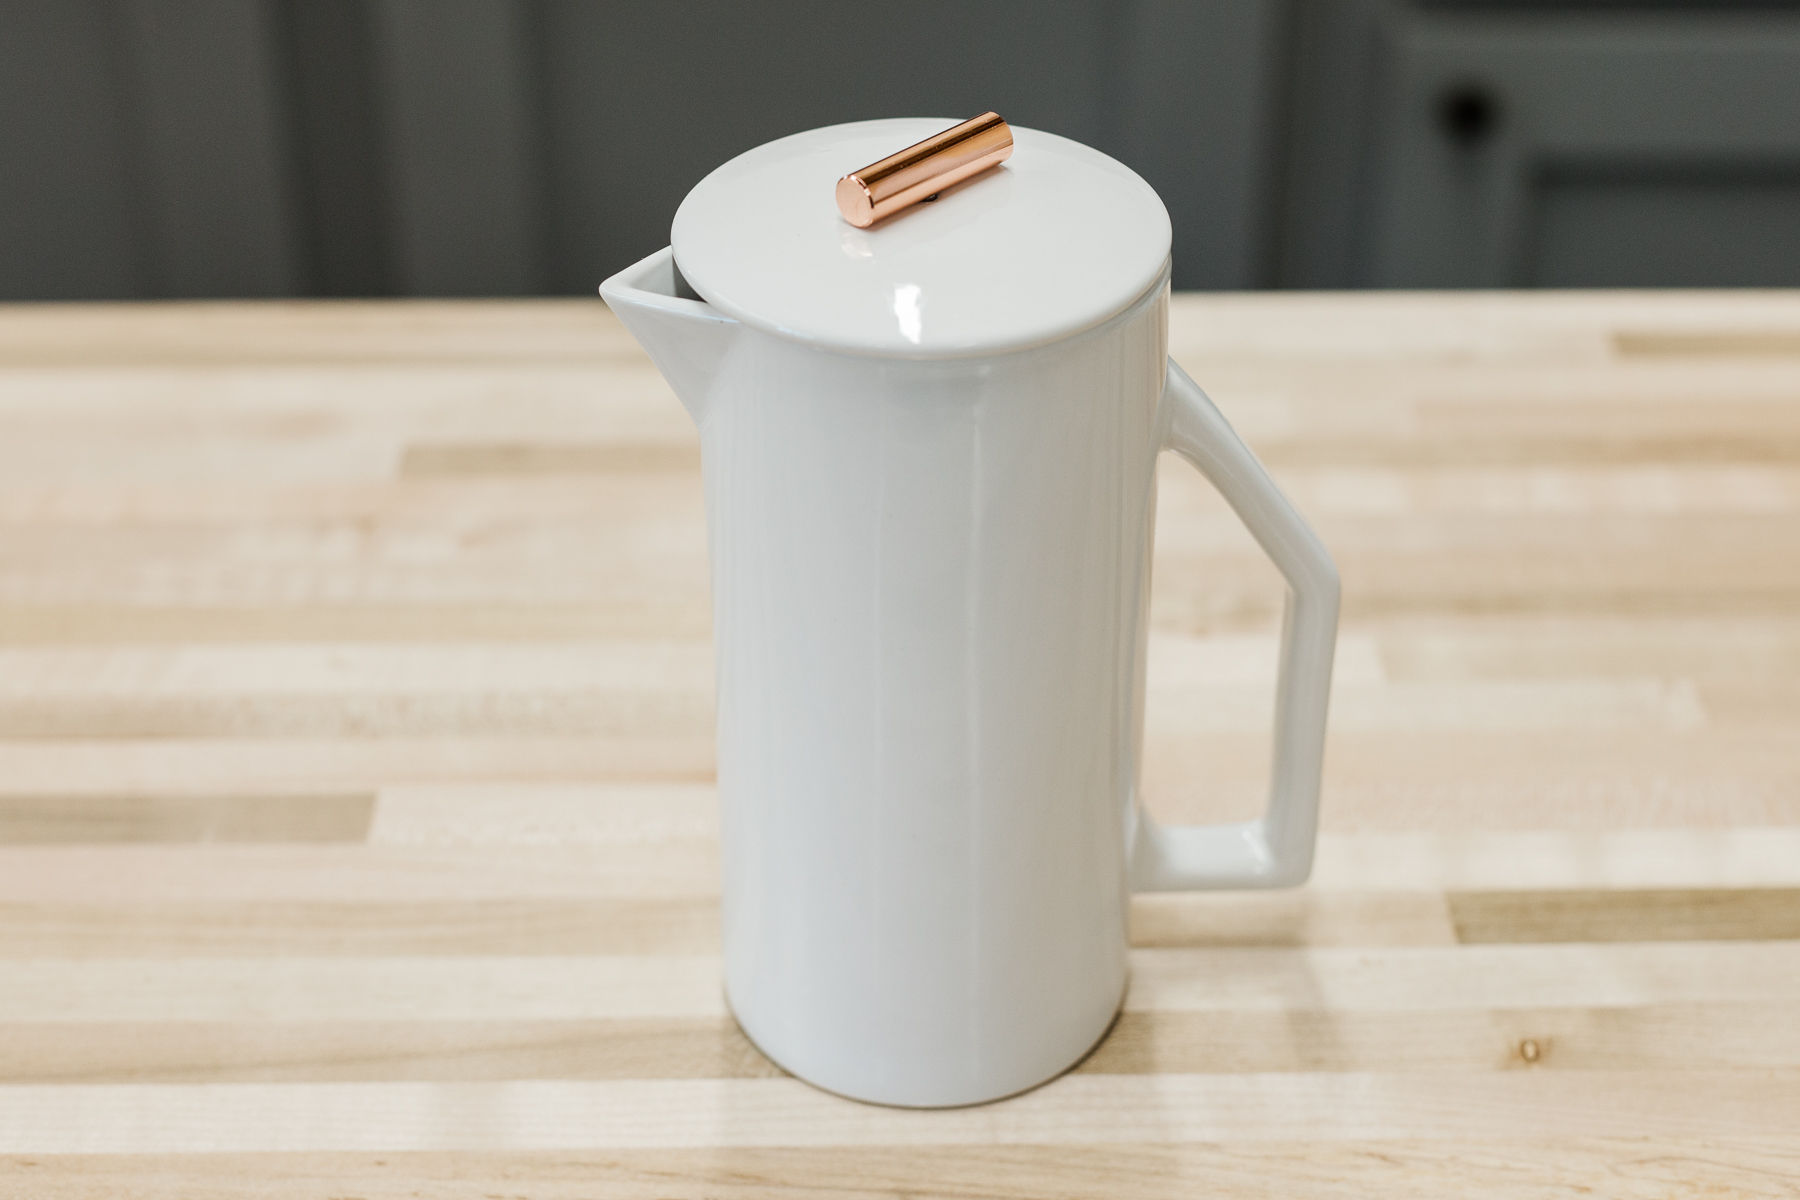 600 milliliter single-walled, white ceramic French press from Yield Design.